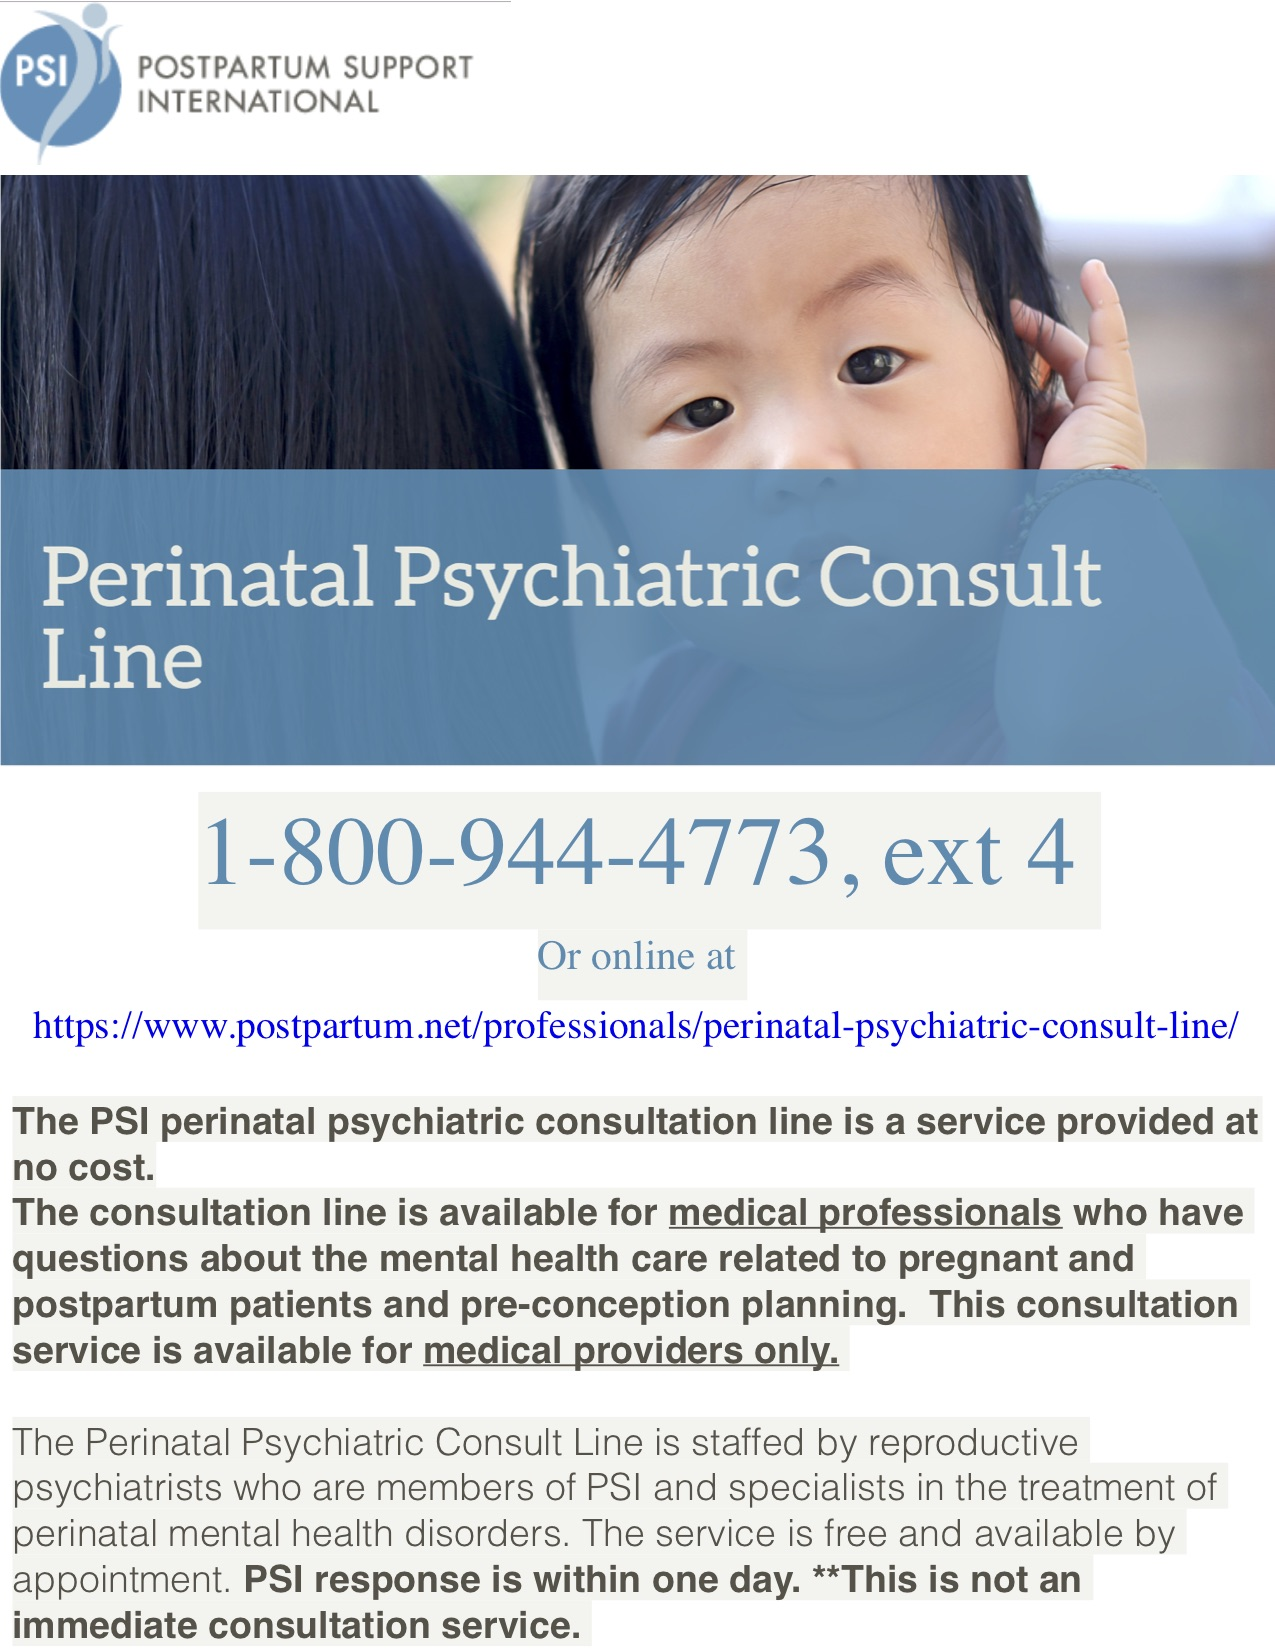 No cost perinatal consults for providers - Staffed by reproductive psychiatrists specializing in the treatment of patients with PMADs